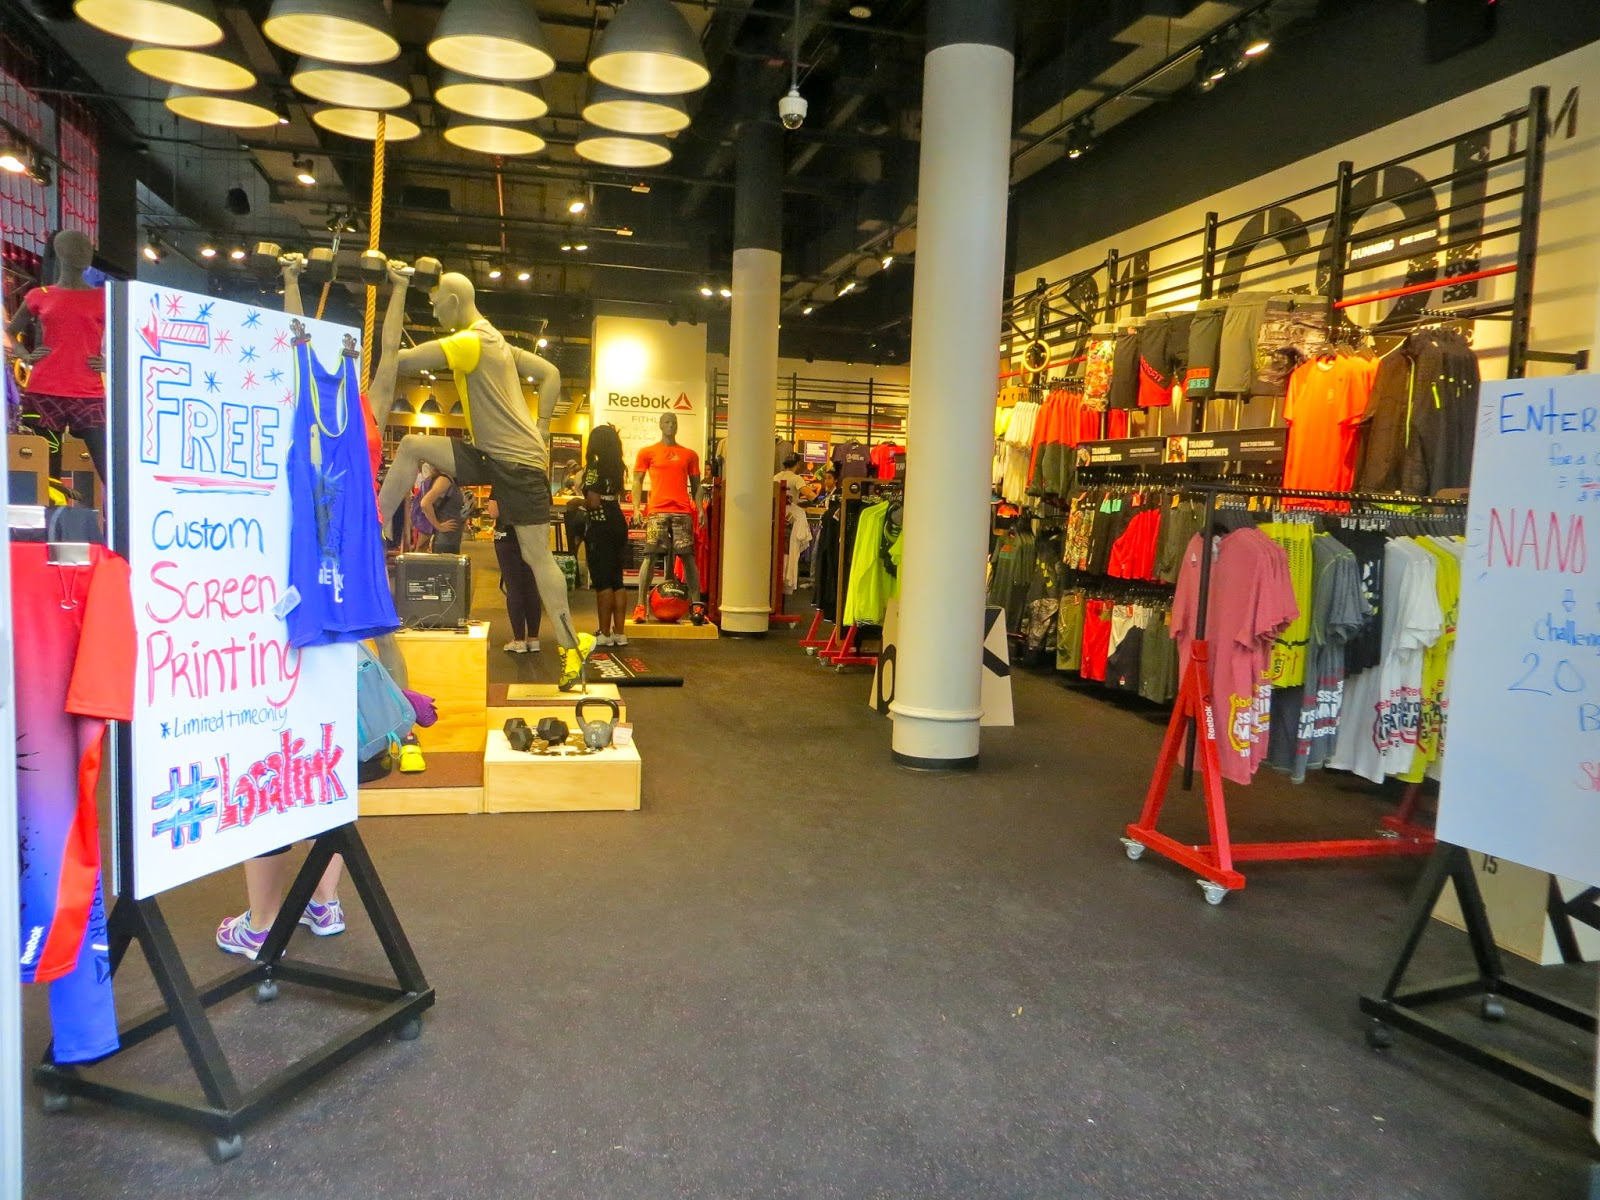 reebok fit hub store crossfit gym opens in new york city interior design shops nyc Another quick dare: NYCu0027s Summer Streets is happening this month--beginning  SATURDAY! Check out last yearu0027s recap to learn what itu0027s all about, ...